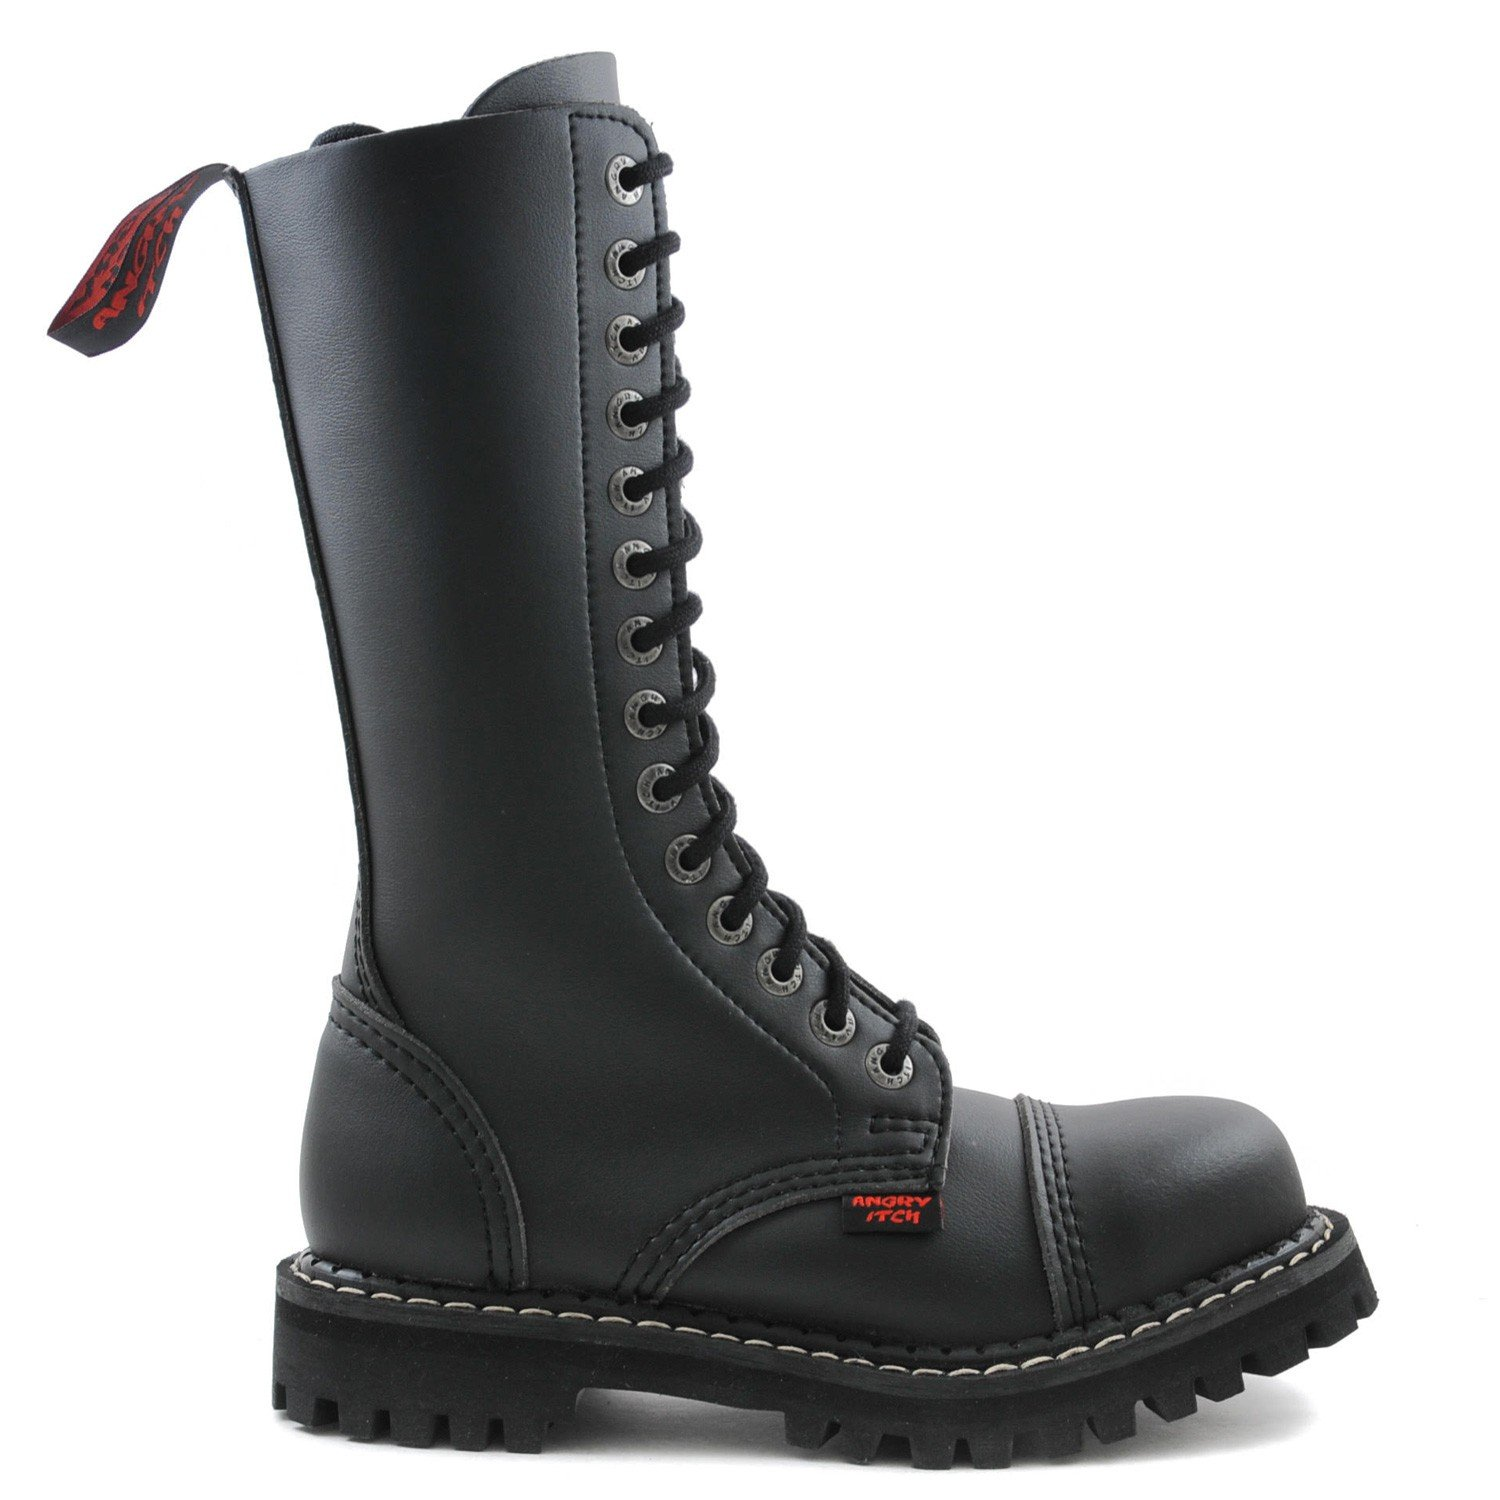 Angry Itch Itch Itch - 14-Loch Gothic Punk Army Ranger Armee schwarze vegane Stiefel mit Stahlkappe 36-48 - Made in EU  692e84